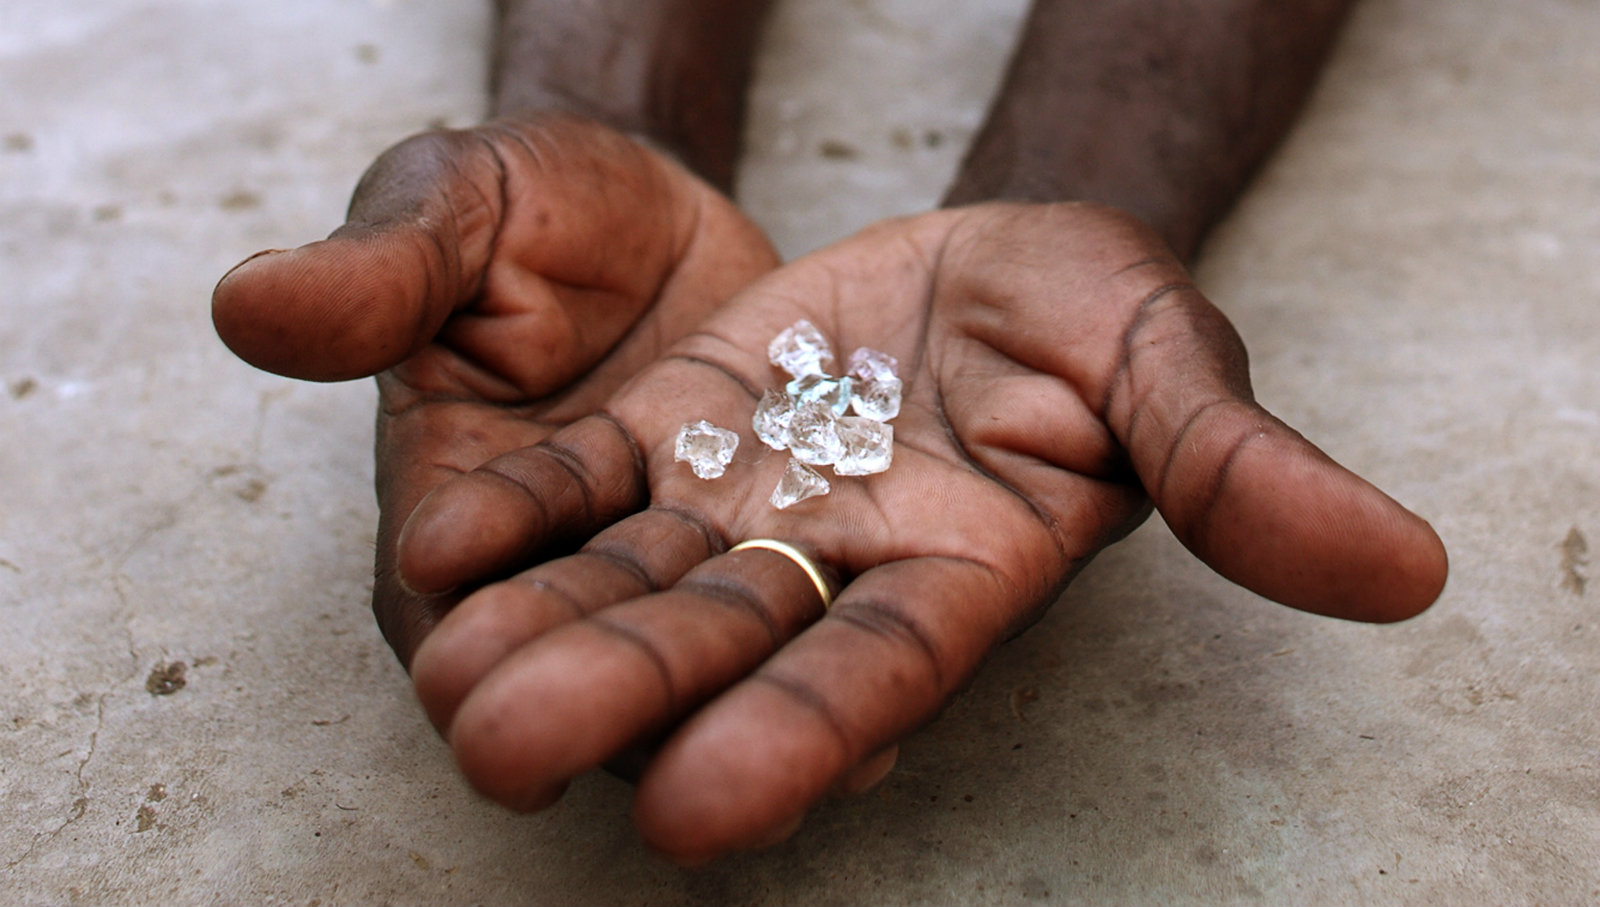 An illegal diamond dealer from Zimbabwe displays diamonds for sale in Manica, near the border with Zimbabwe, September 19, 2010. World Diamond Council president Eli Izhakoff said recently the flow of illicit diamonds was now less than 0.2 percent of global volumes.